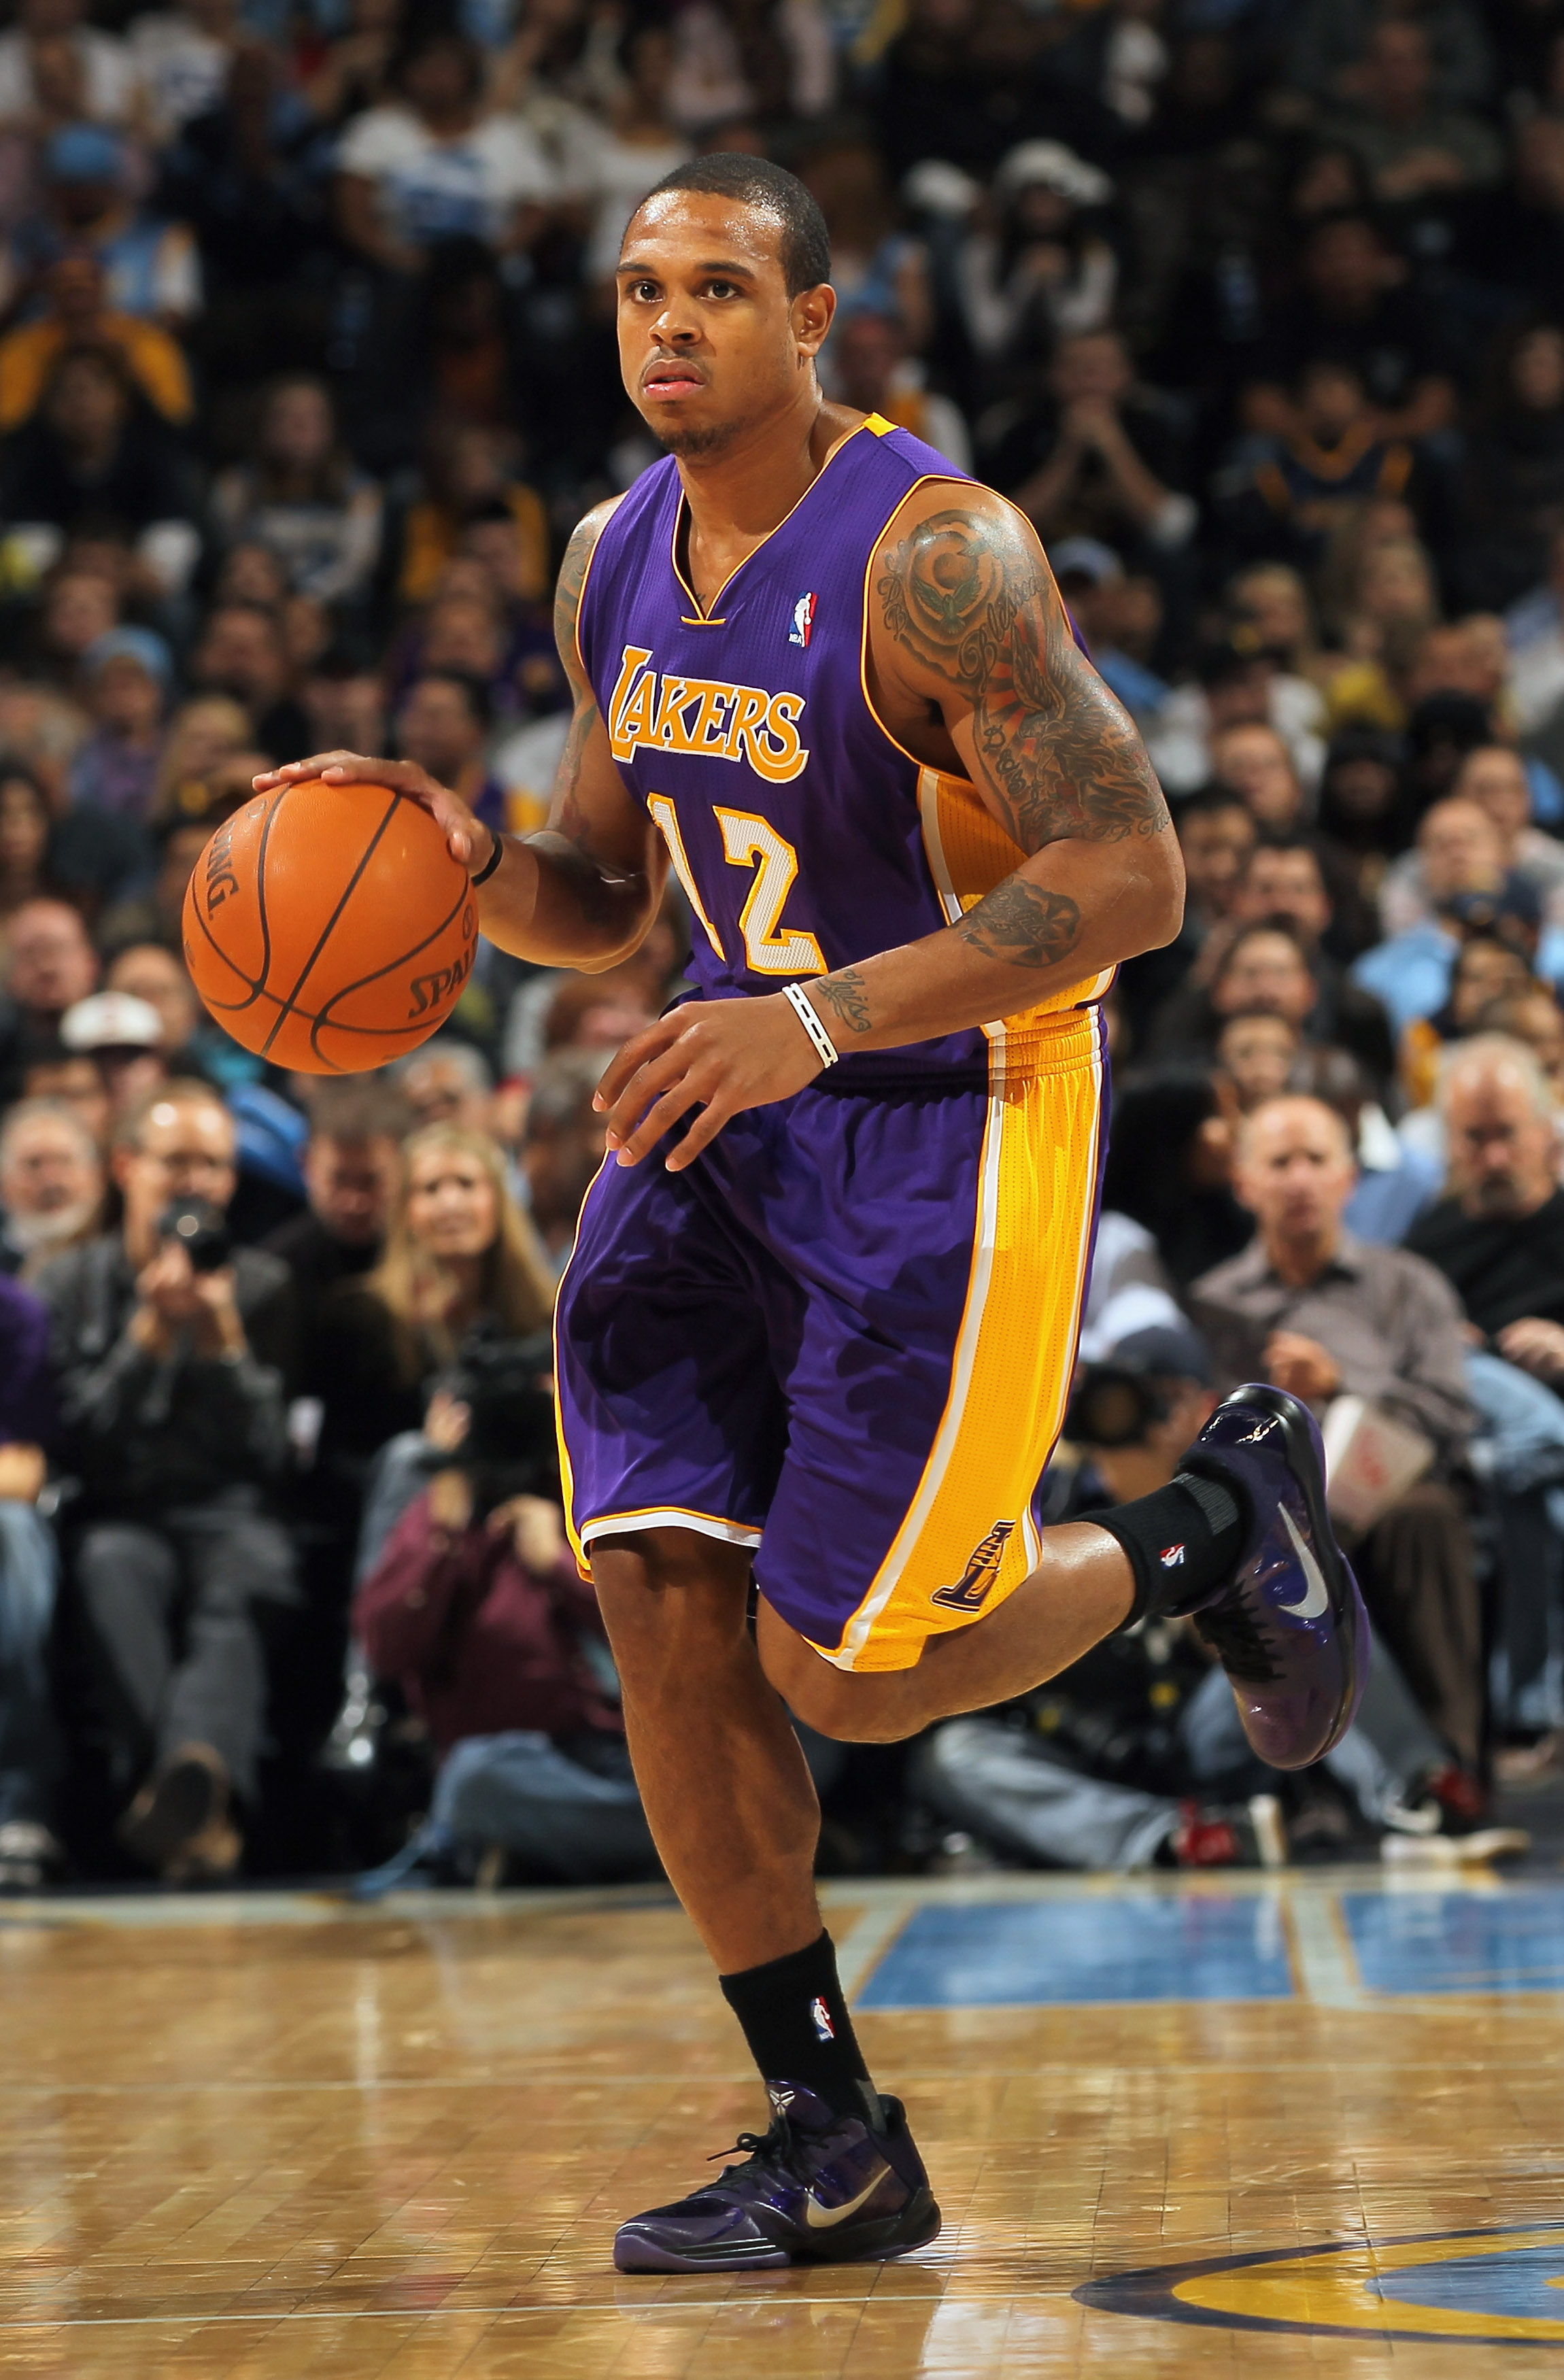 DENVER - NOVEMBER 11:  Shannon Brown #12 of the Los Angeles Lakers controls the ball against the Denver Nuggets at the Pepsi Center on November 11, 2010 in Denver, Colorado. The Nuggets defeated the Lakers 118-112.  NOTE TO USER: User expressly acknowledg